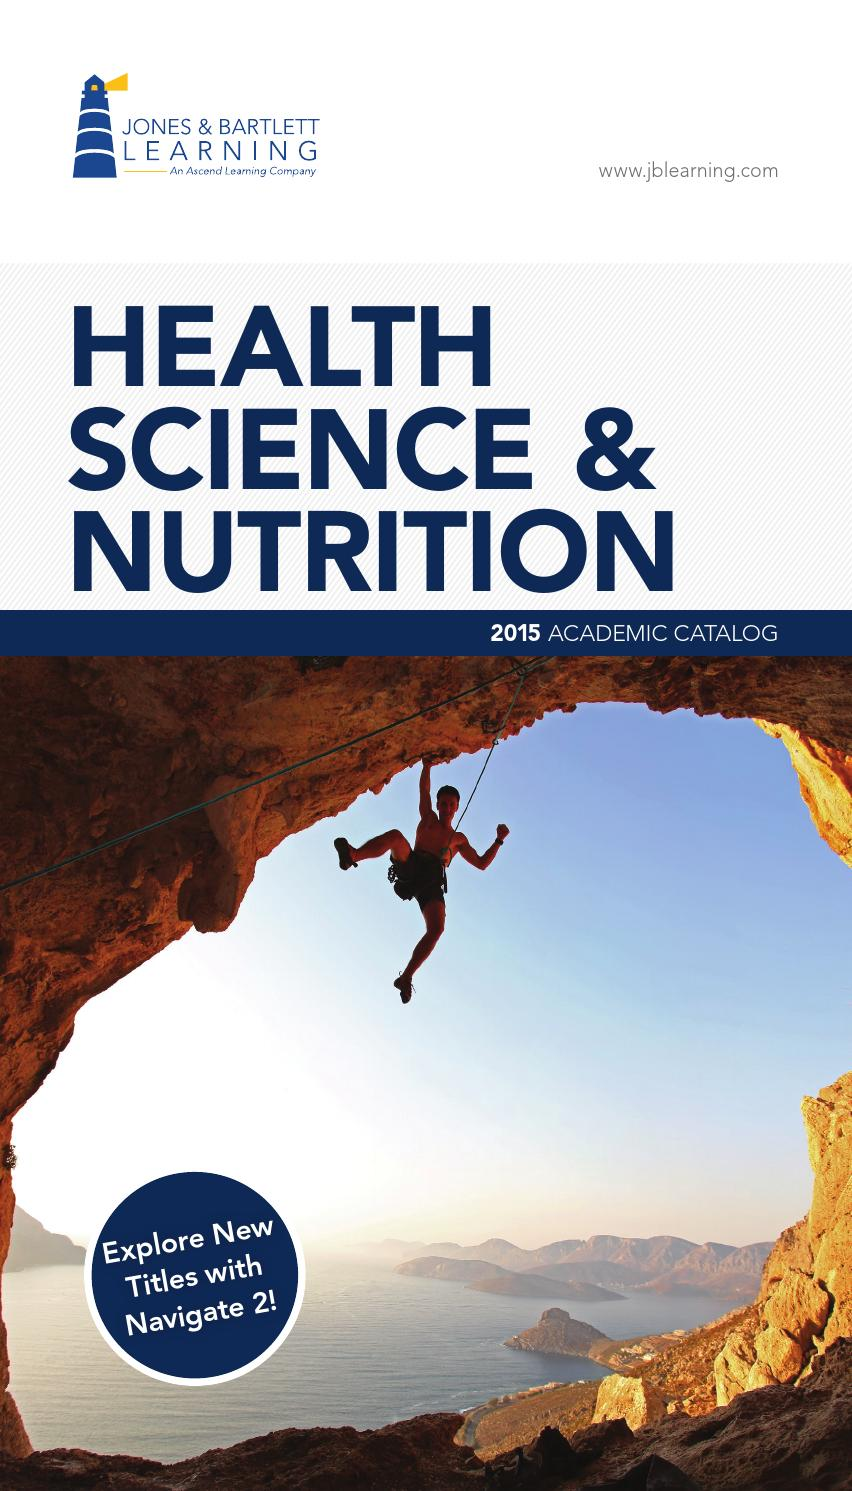 2015 Health Science & Nutrition Catalog | Jones & Bartlett Learning by Jones & Bartlett Learning - issuu